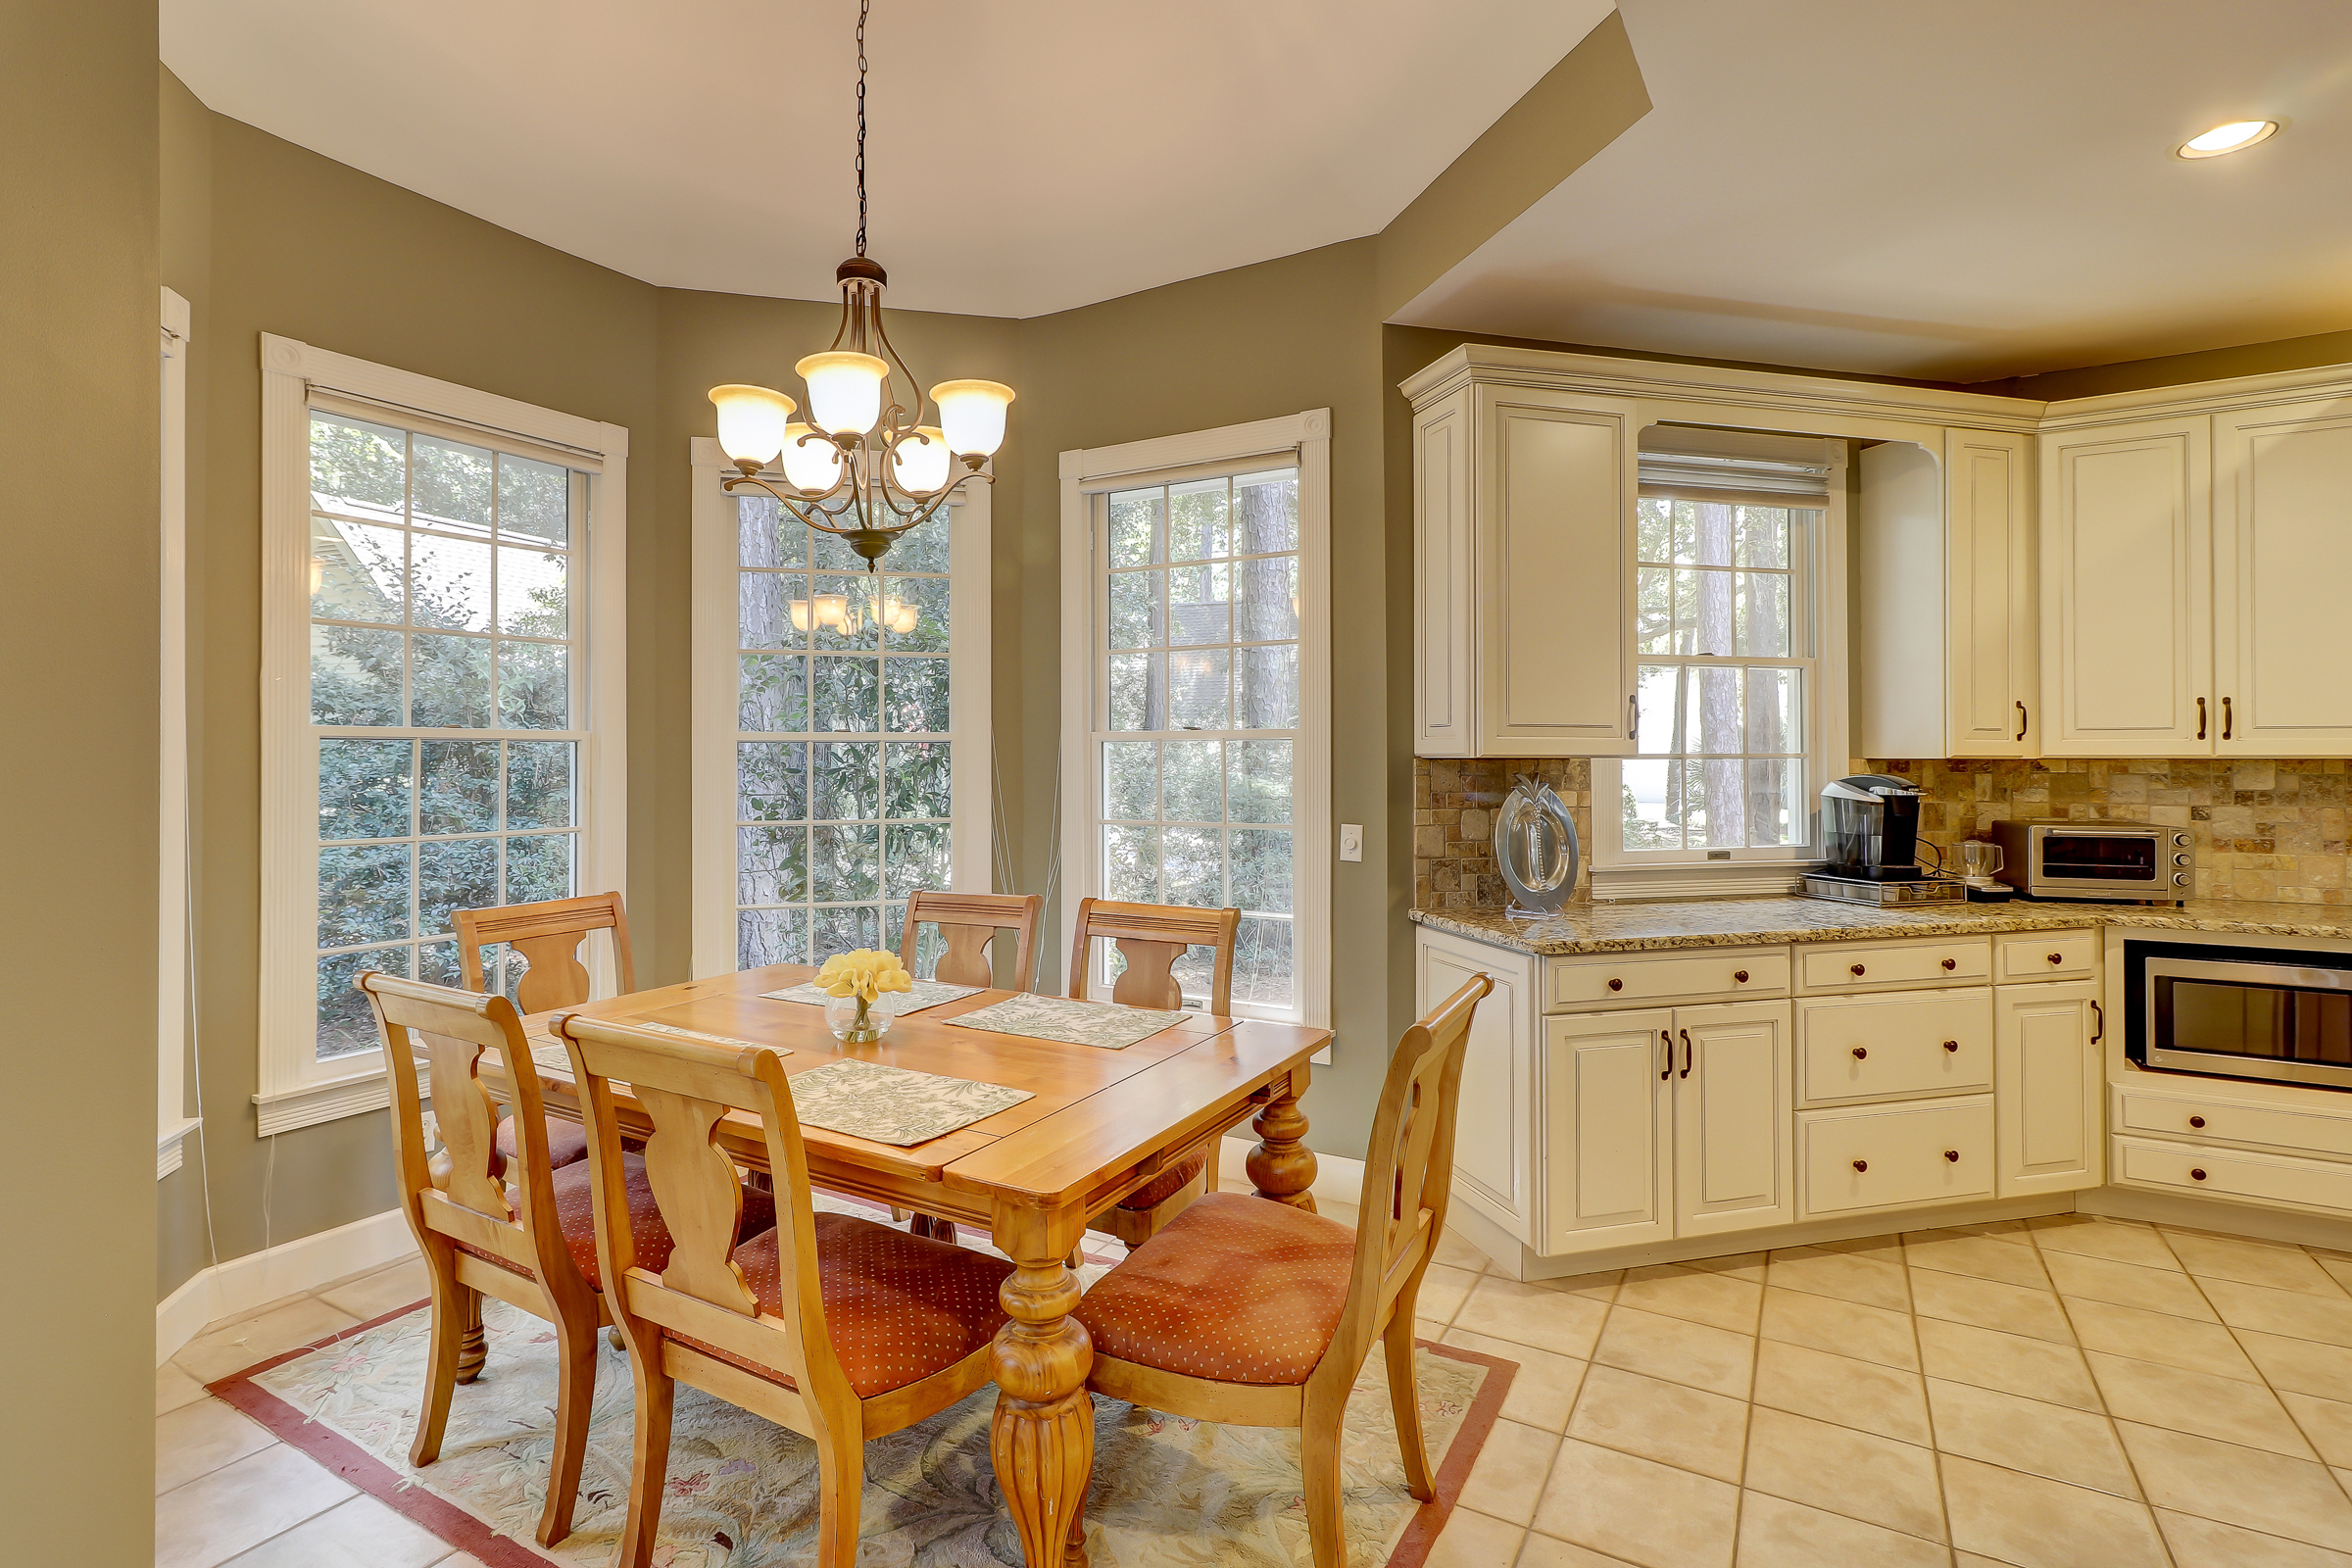 The breakfast room is tucked off to the side to allow good traffic flow and it is defined with a tray ceiling.  The breakfast room is great for casual dining and looks over the private backyard with many windows in this custom bay.